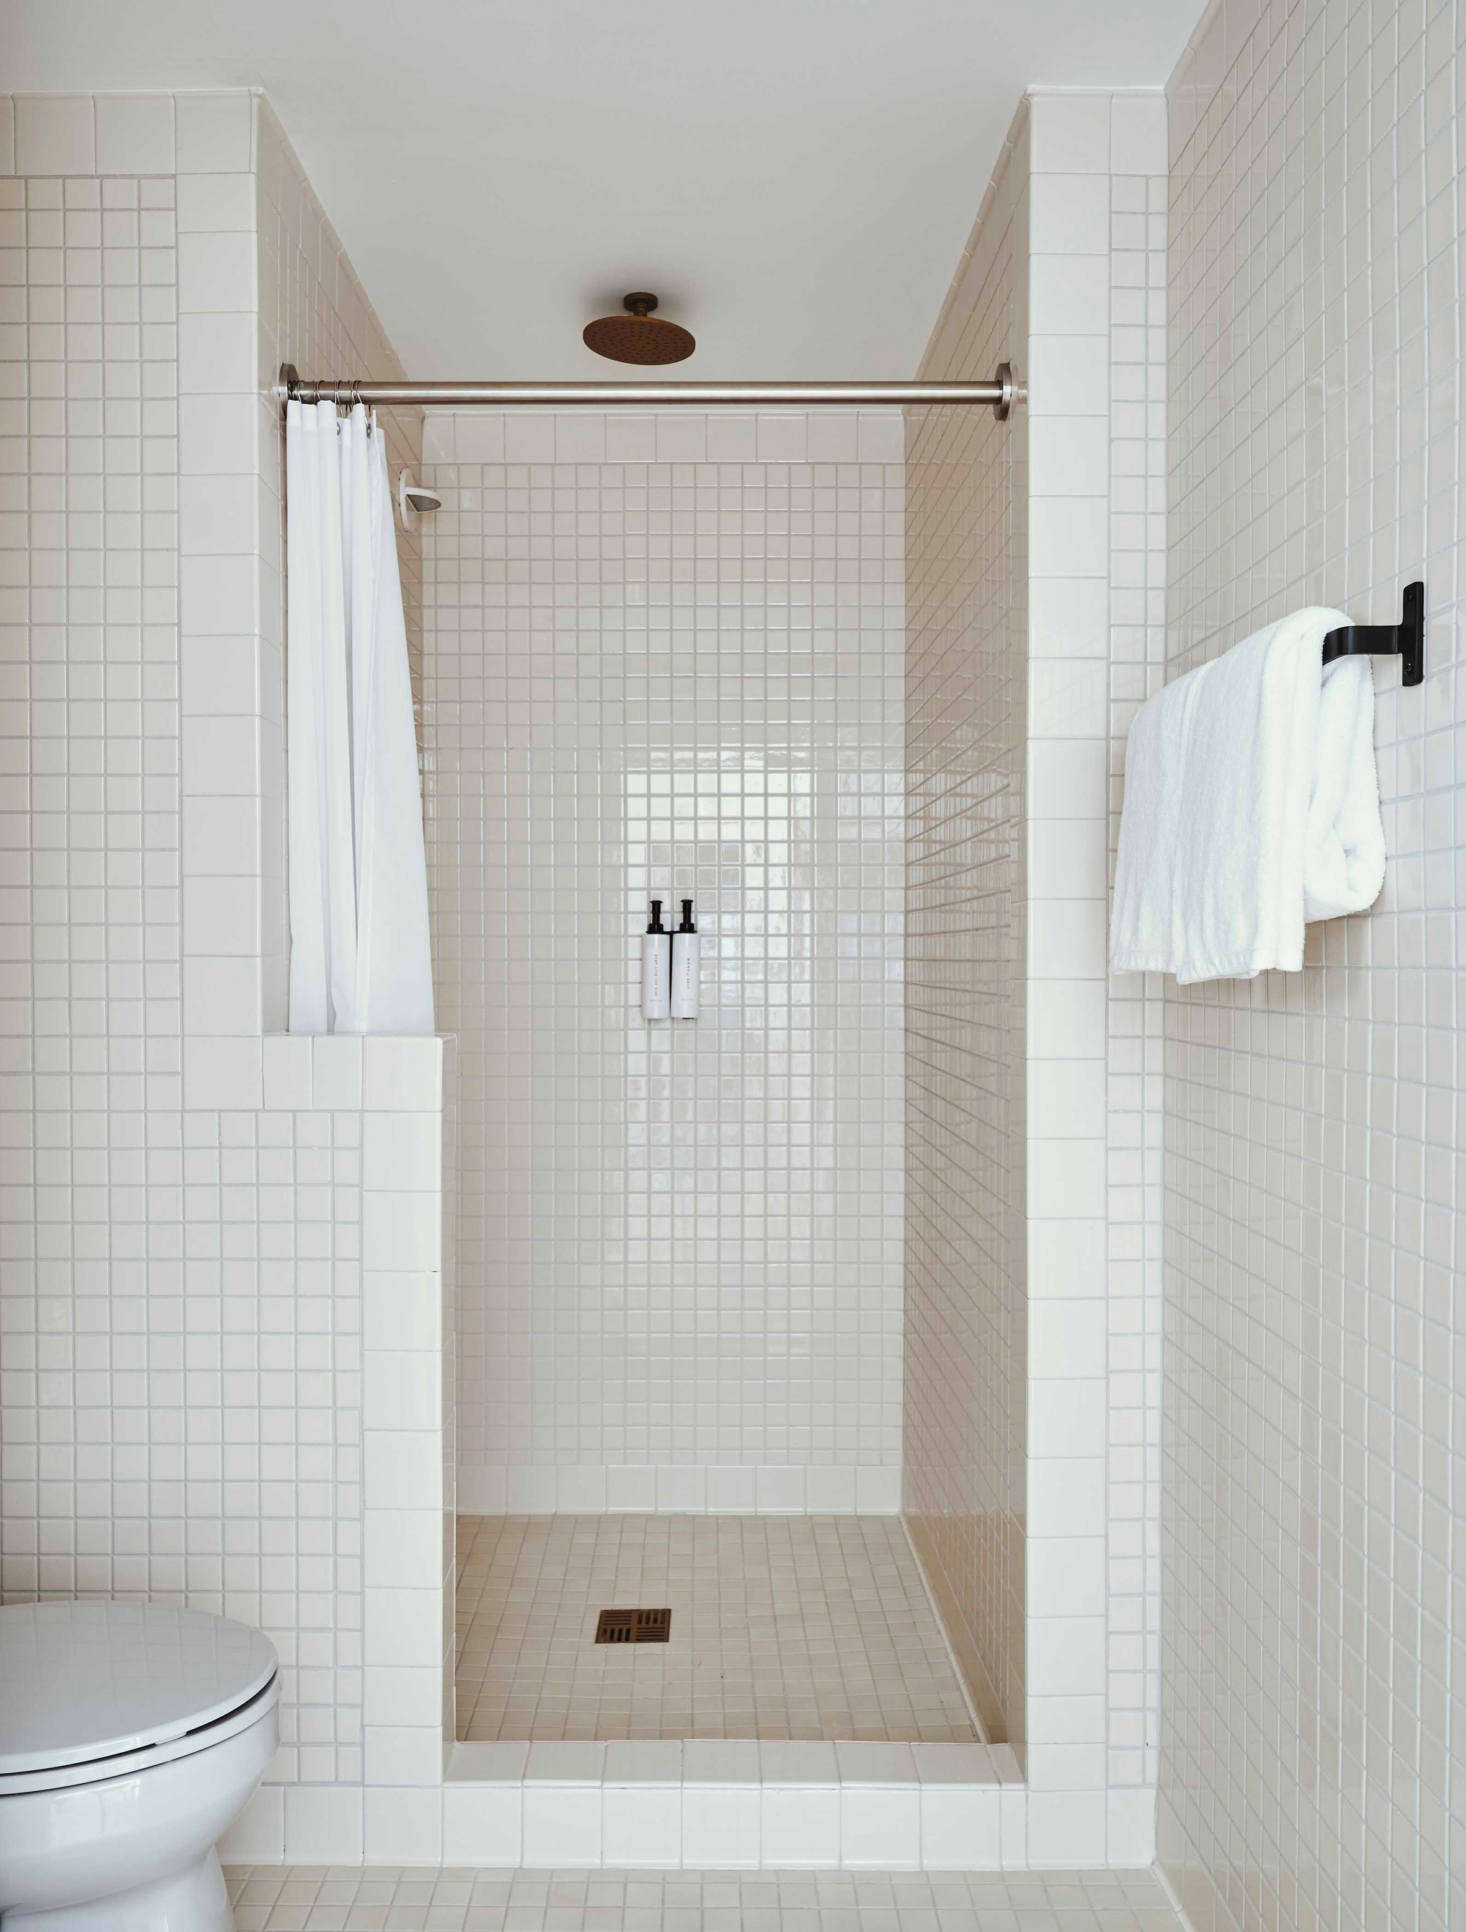 A simple white tiled guest bathroom.